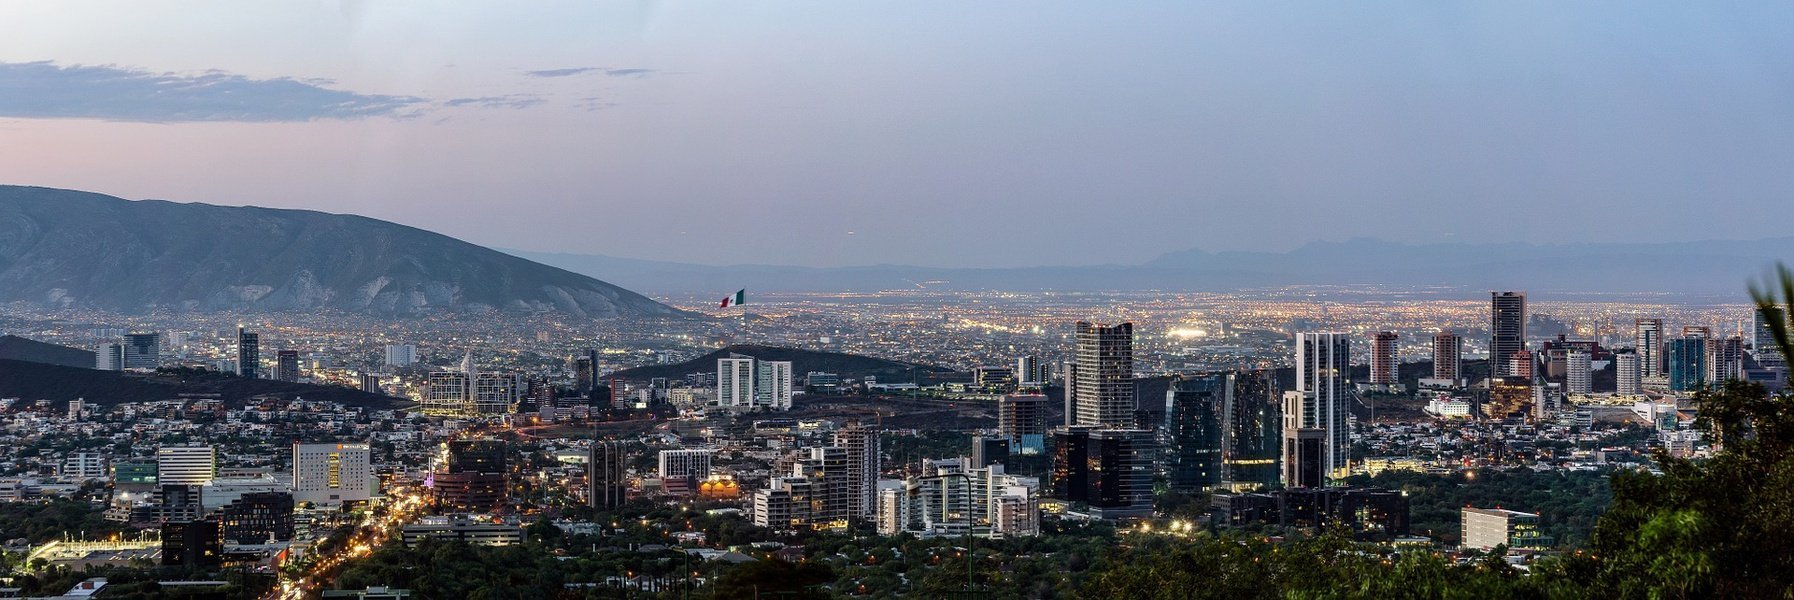 Krystal Hoteles Discover The Capital Of Nuevo León Staying At One Of The Best Hotels In Monterrey México Mexico